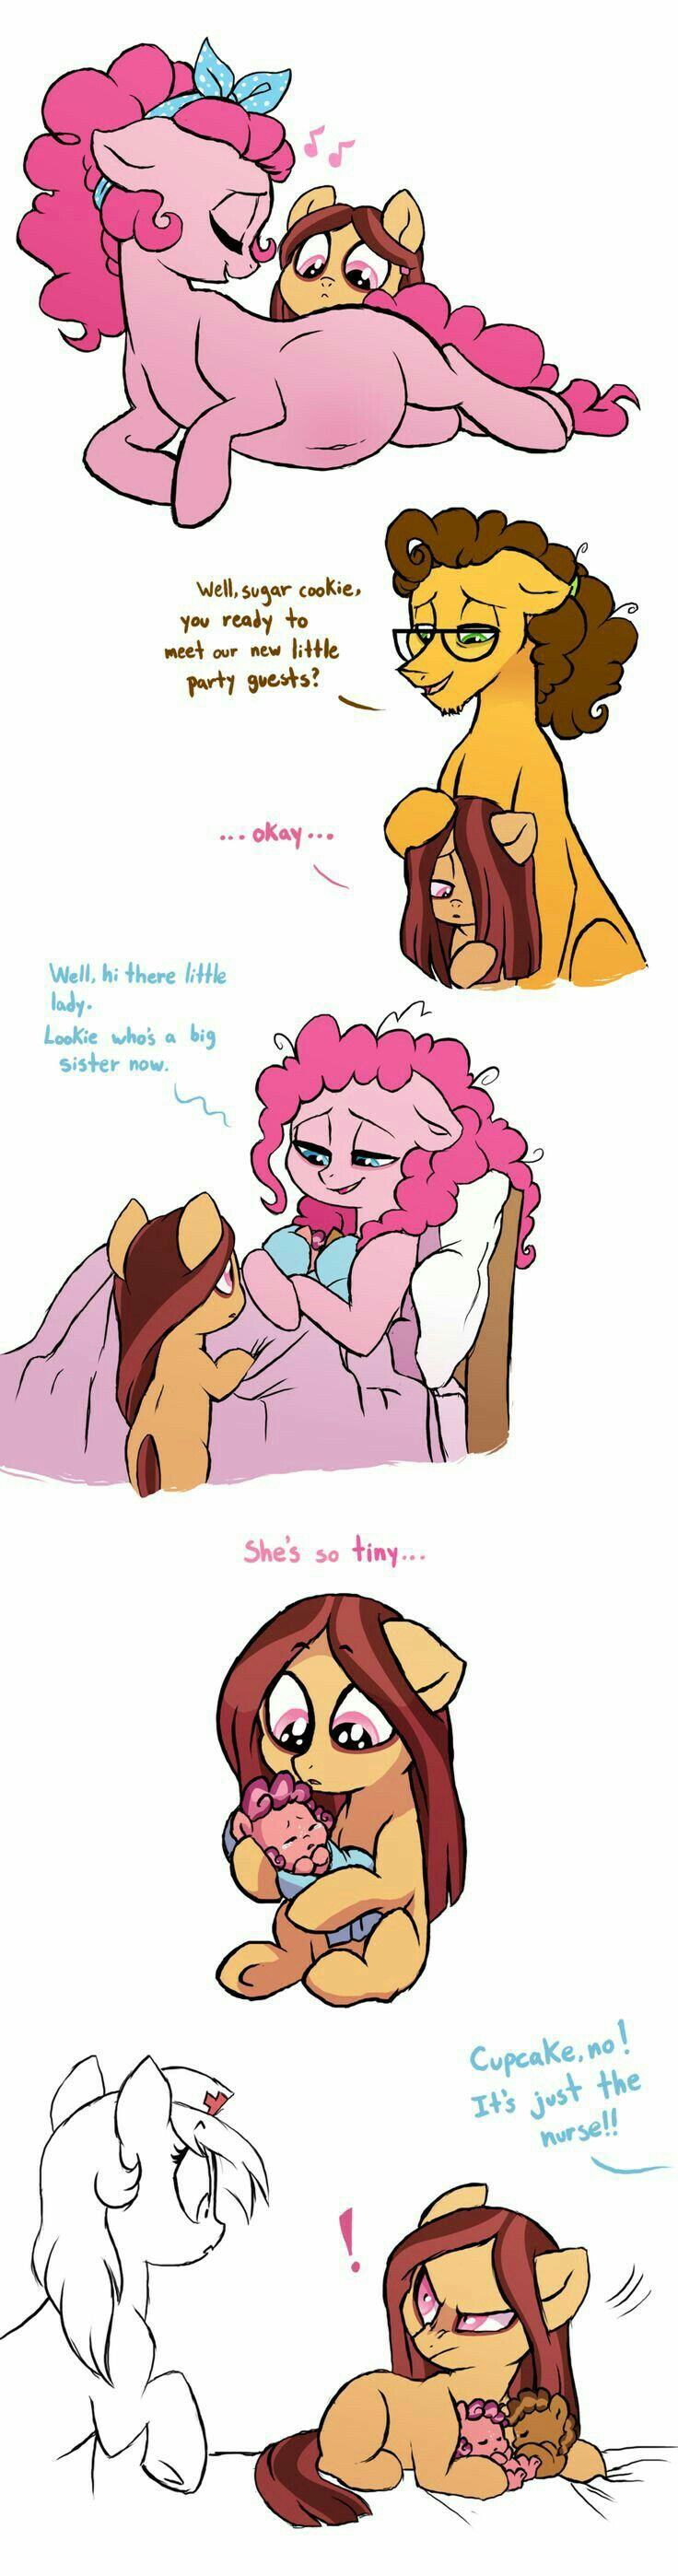 That is actually adorable and I'm not in the mlp fandom